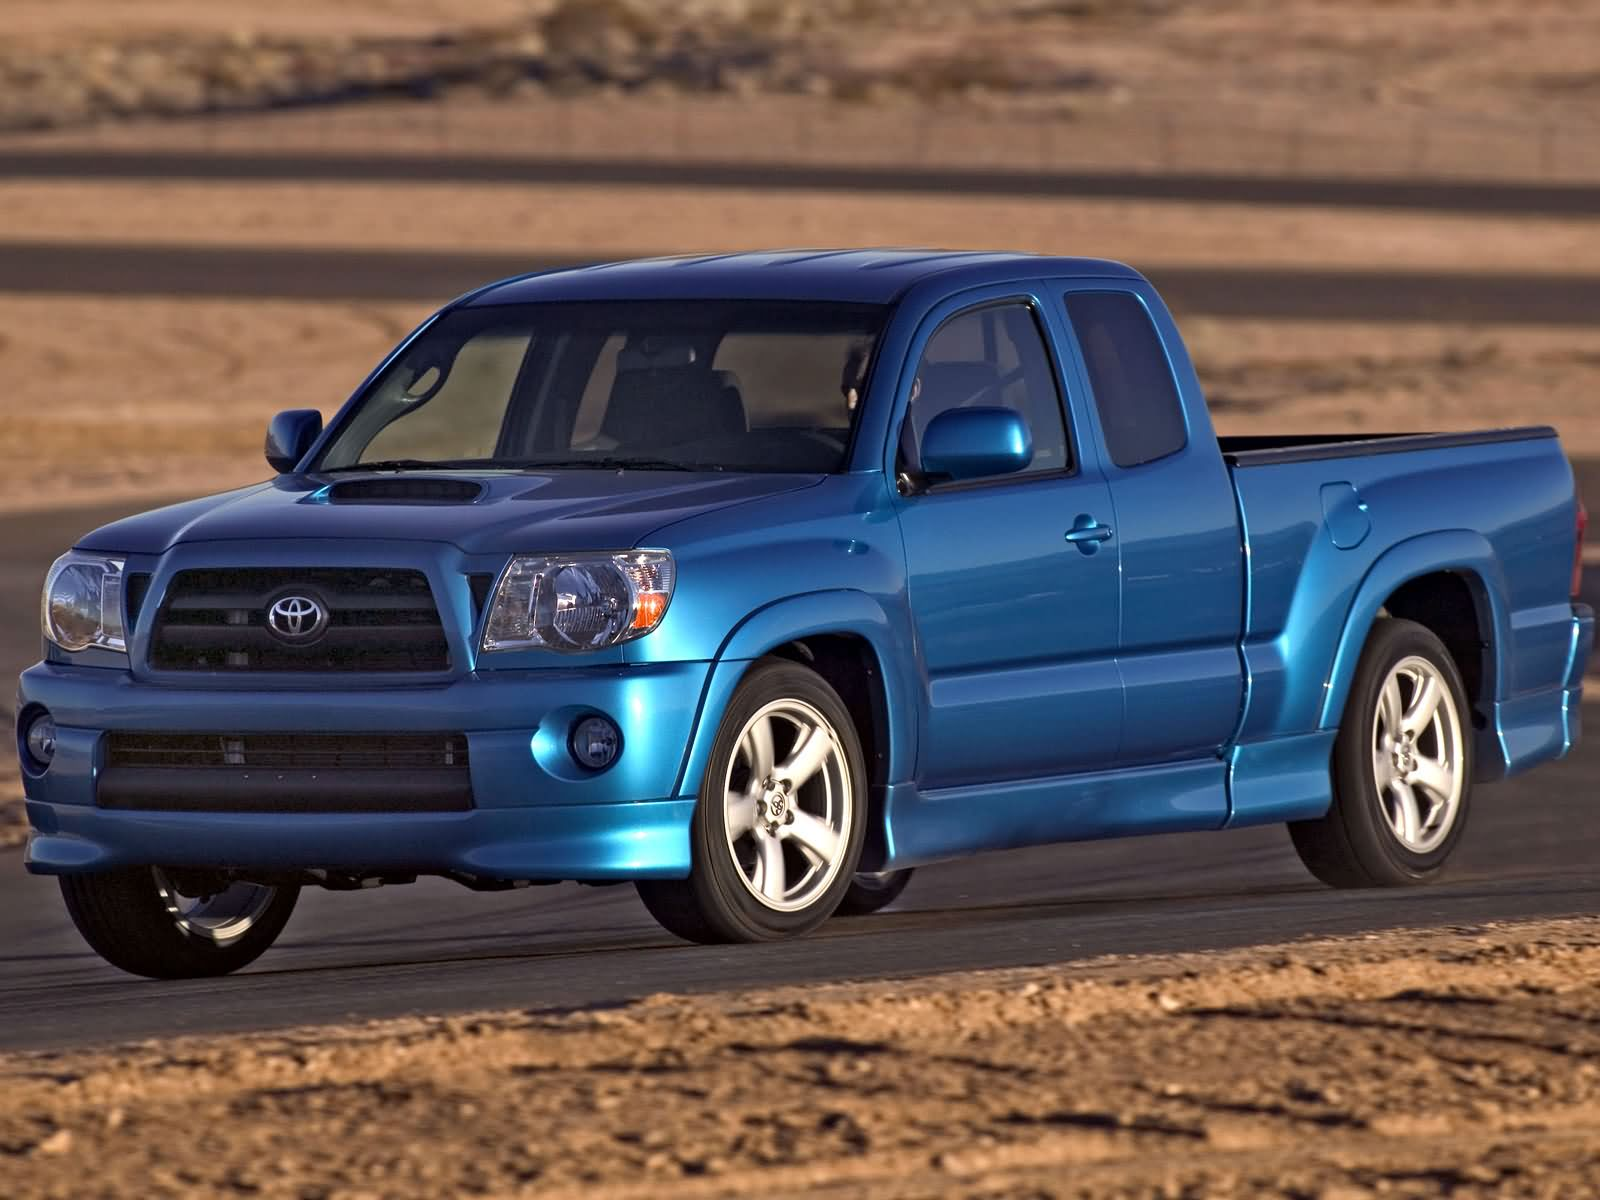 toyota tacoma x runner 2005 toyota tacoma x runner 2005 photo 04 car in pictures car photo. Black Bedroom Furniture Sets. Home Design Ideas